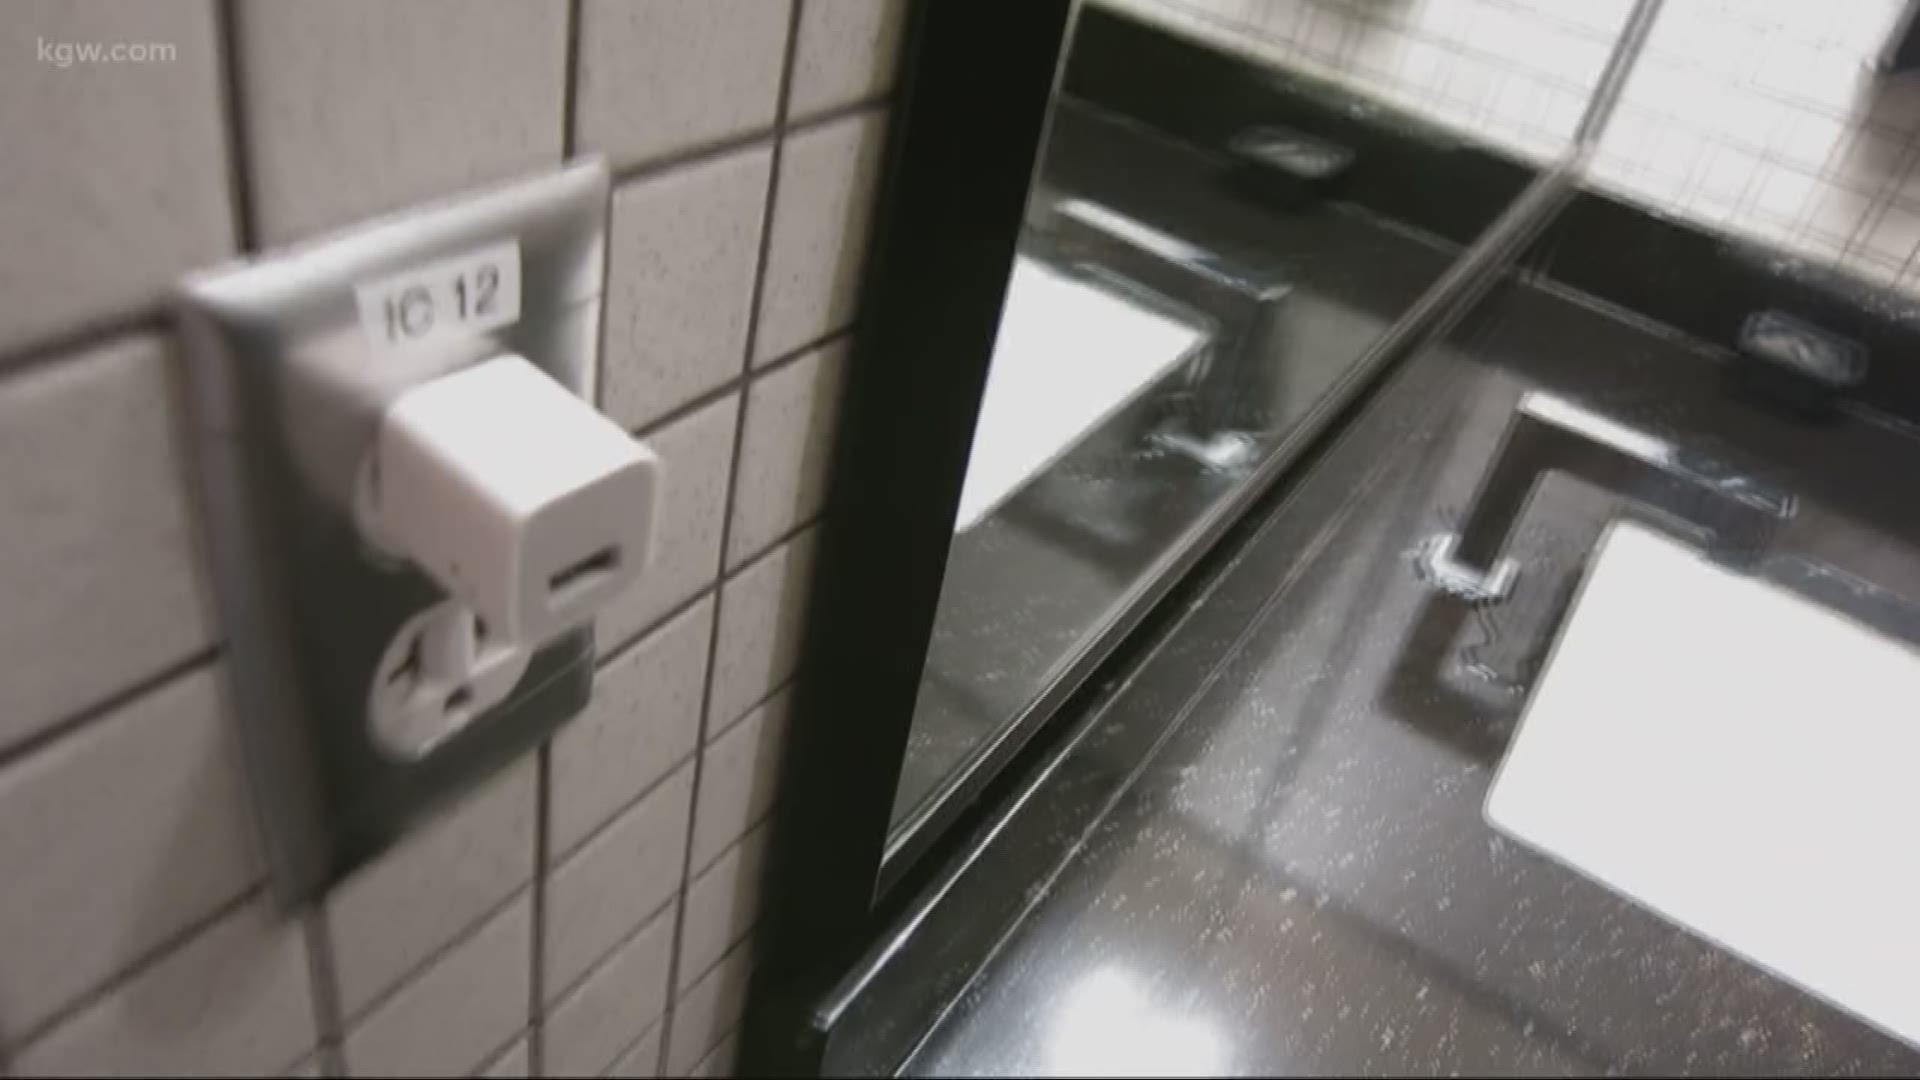 Clever Ways Creeps Hide Spy Cameras From Water Bottles To Usb Chargers Kgw Com